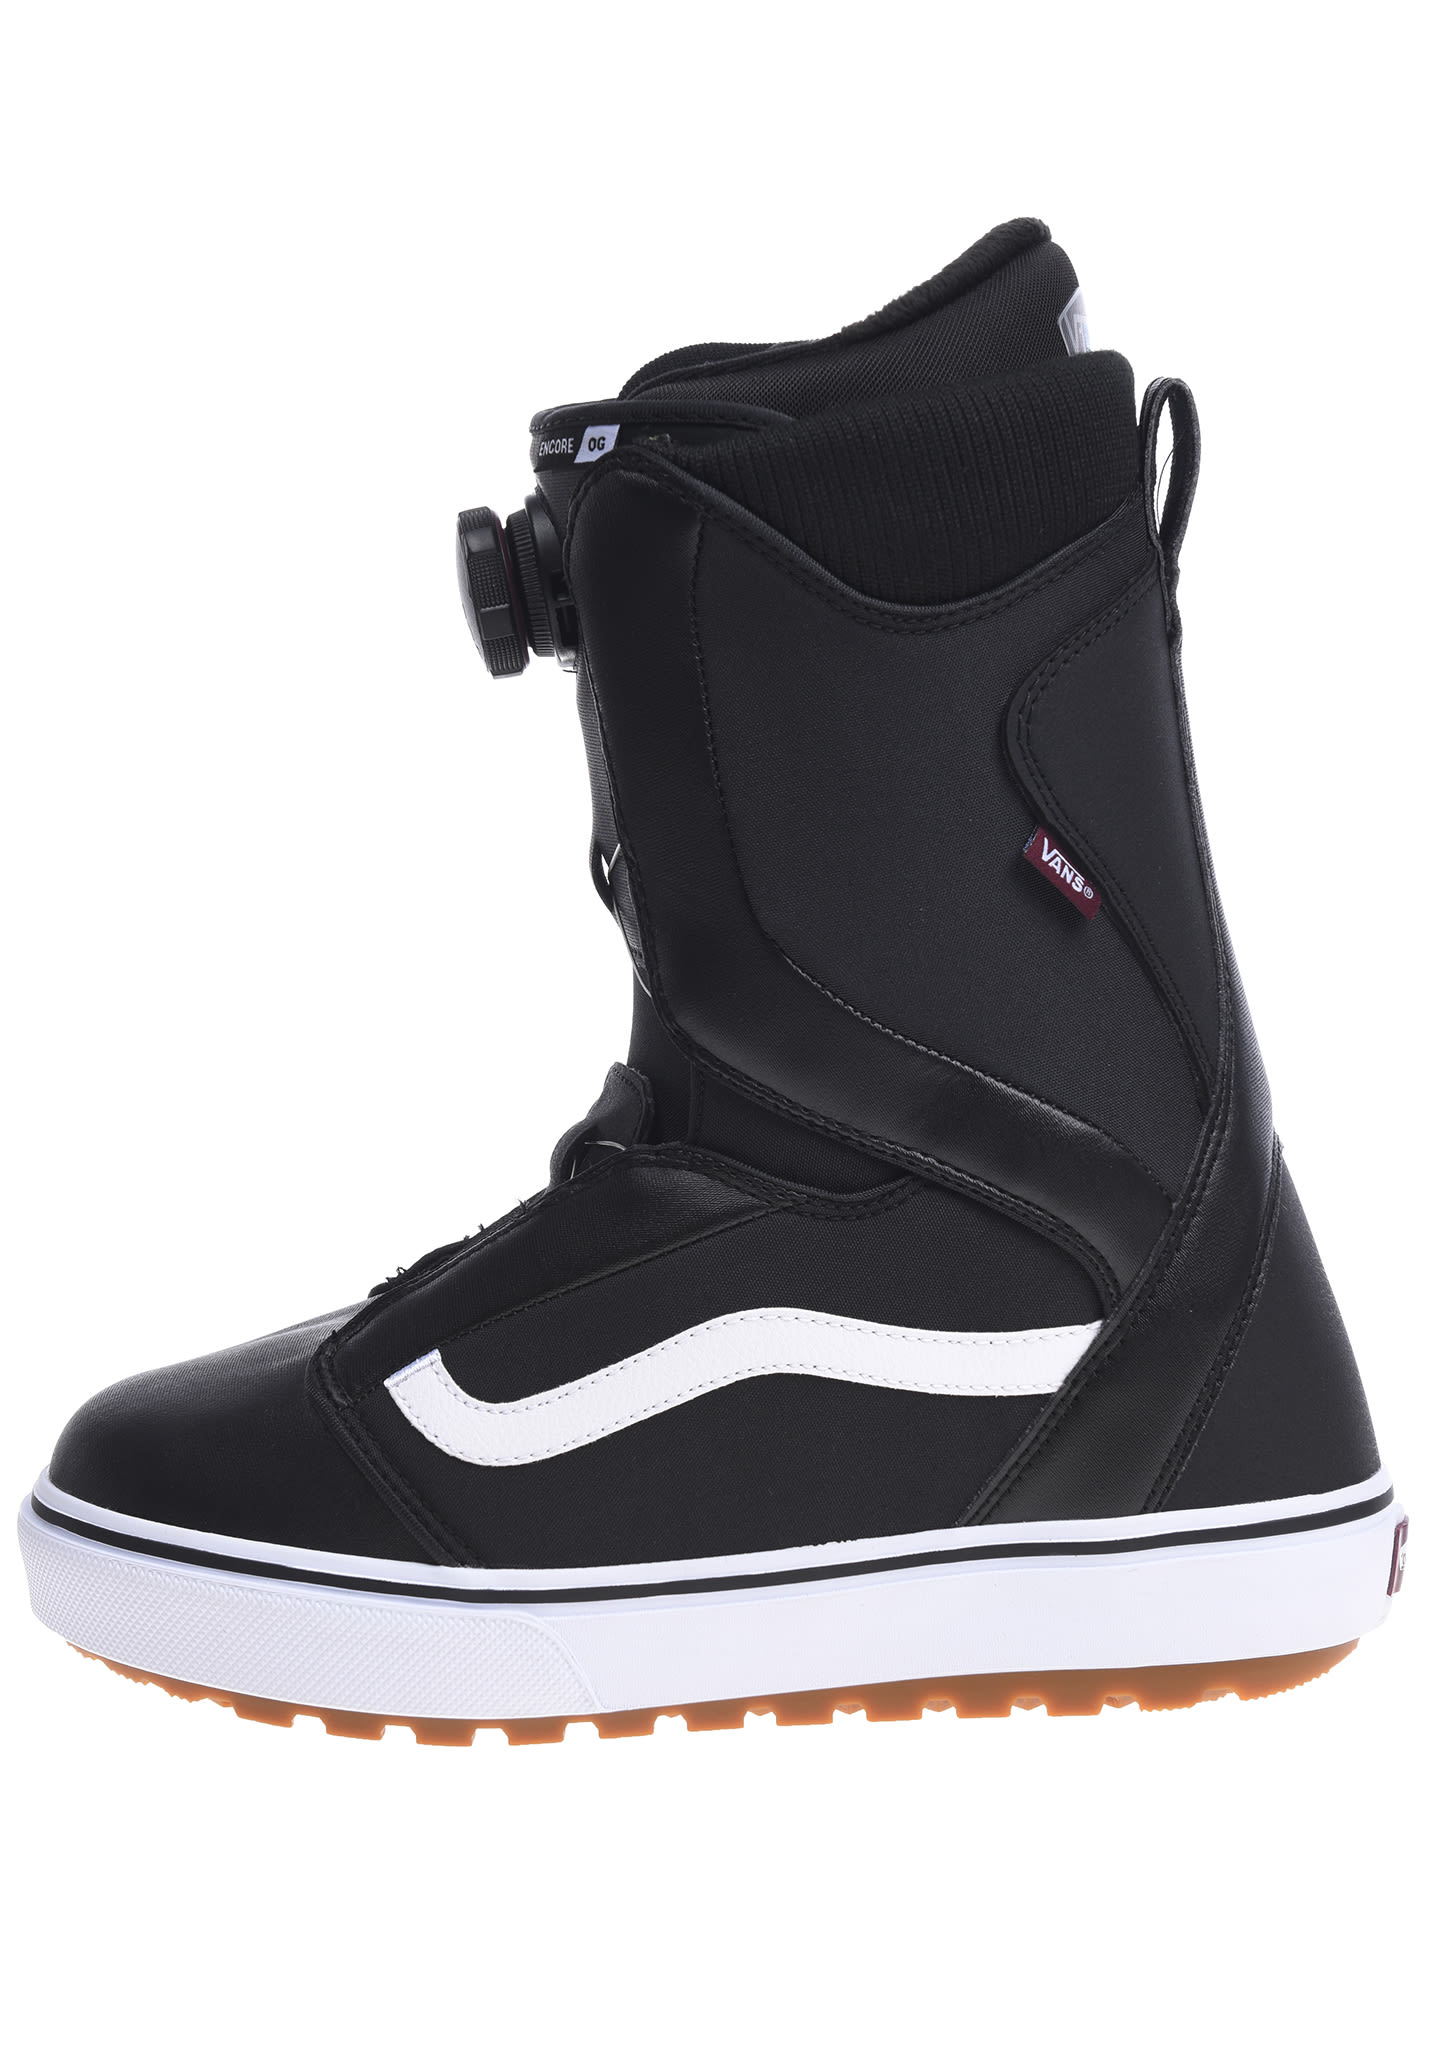 sports shoes 8f5f8 4cd74 VANS Encore OG - Snowboard Boots für Damen - Schwarz